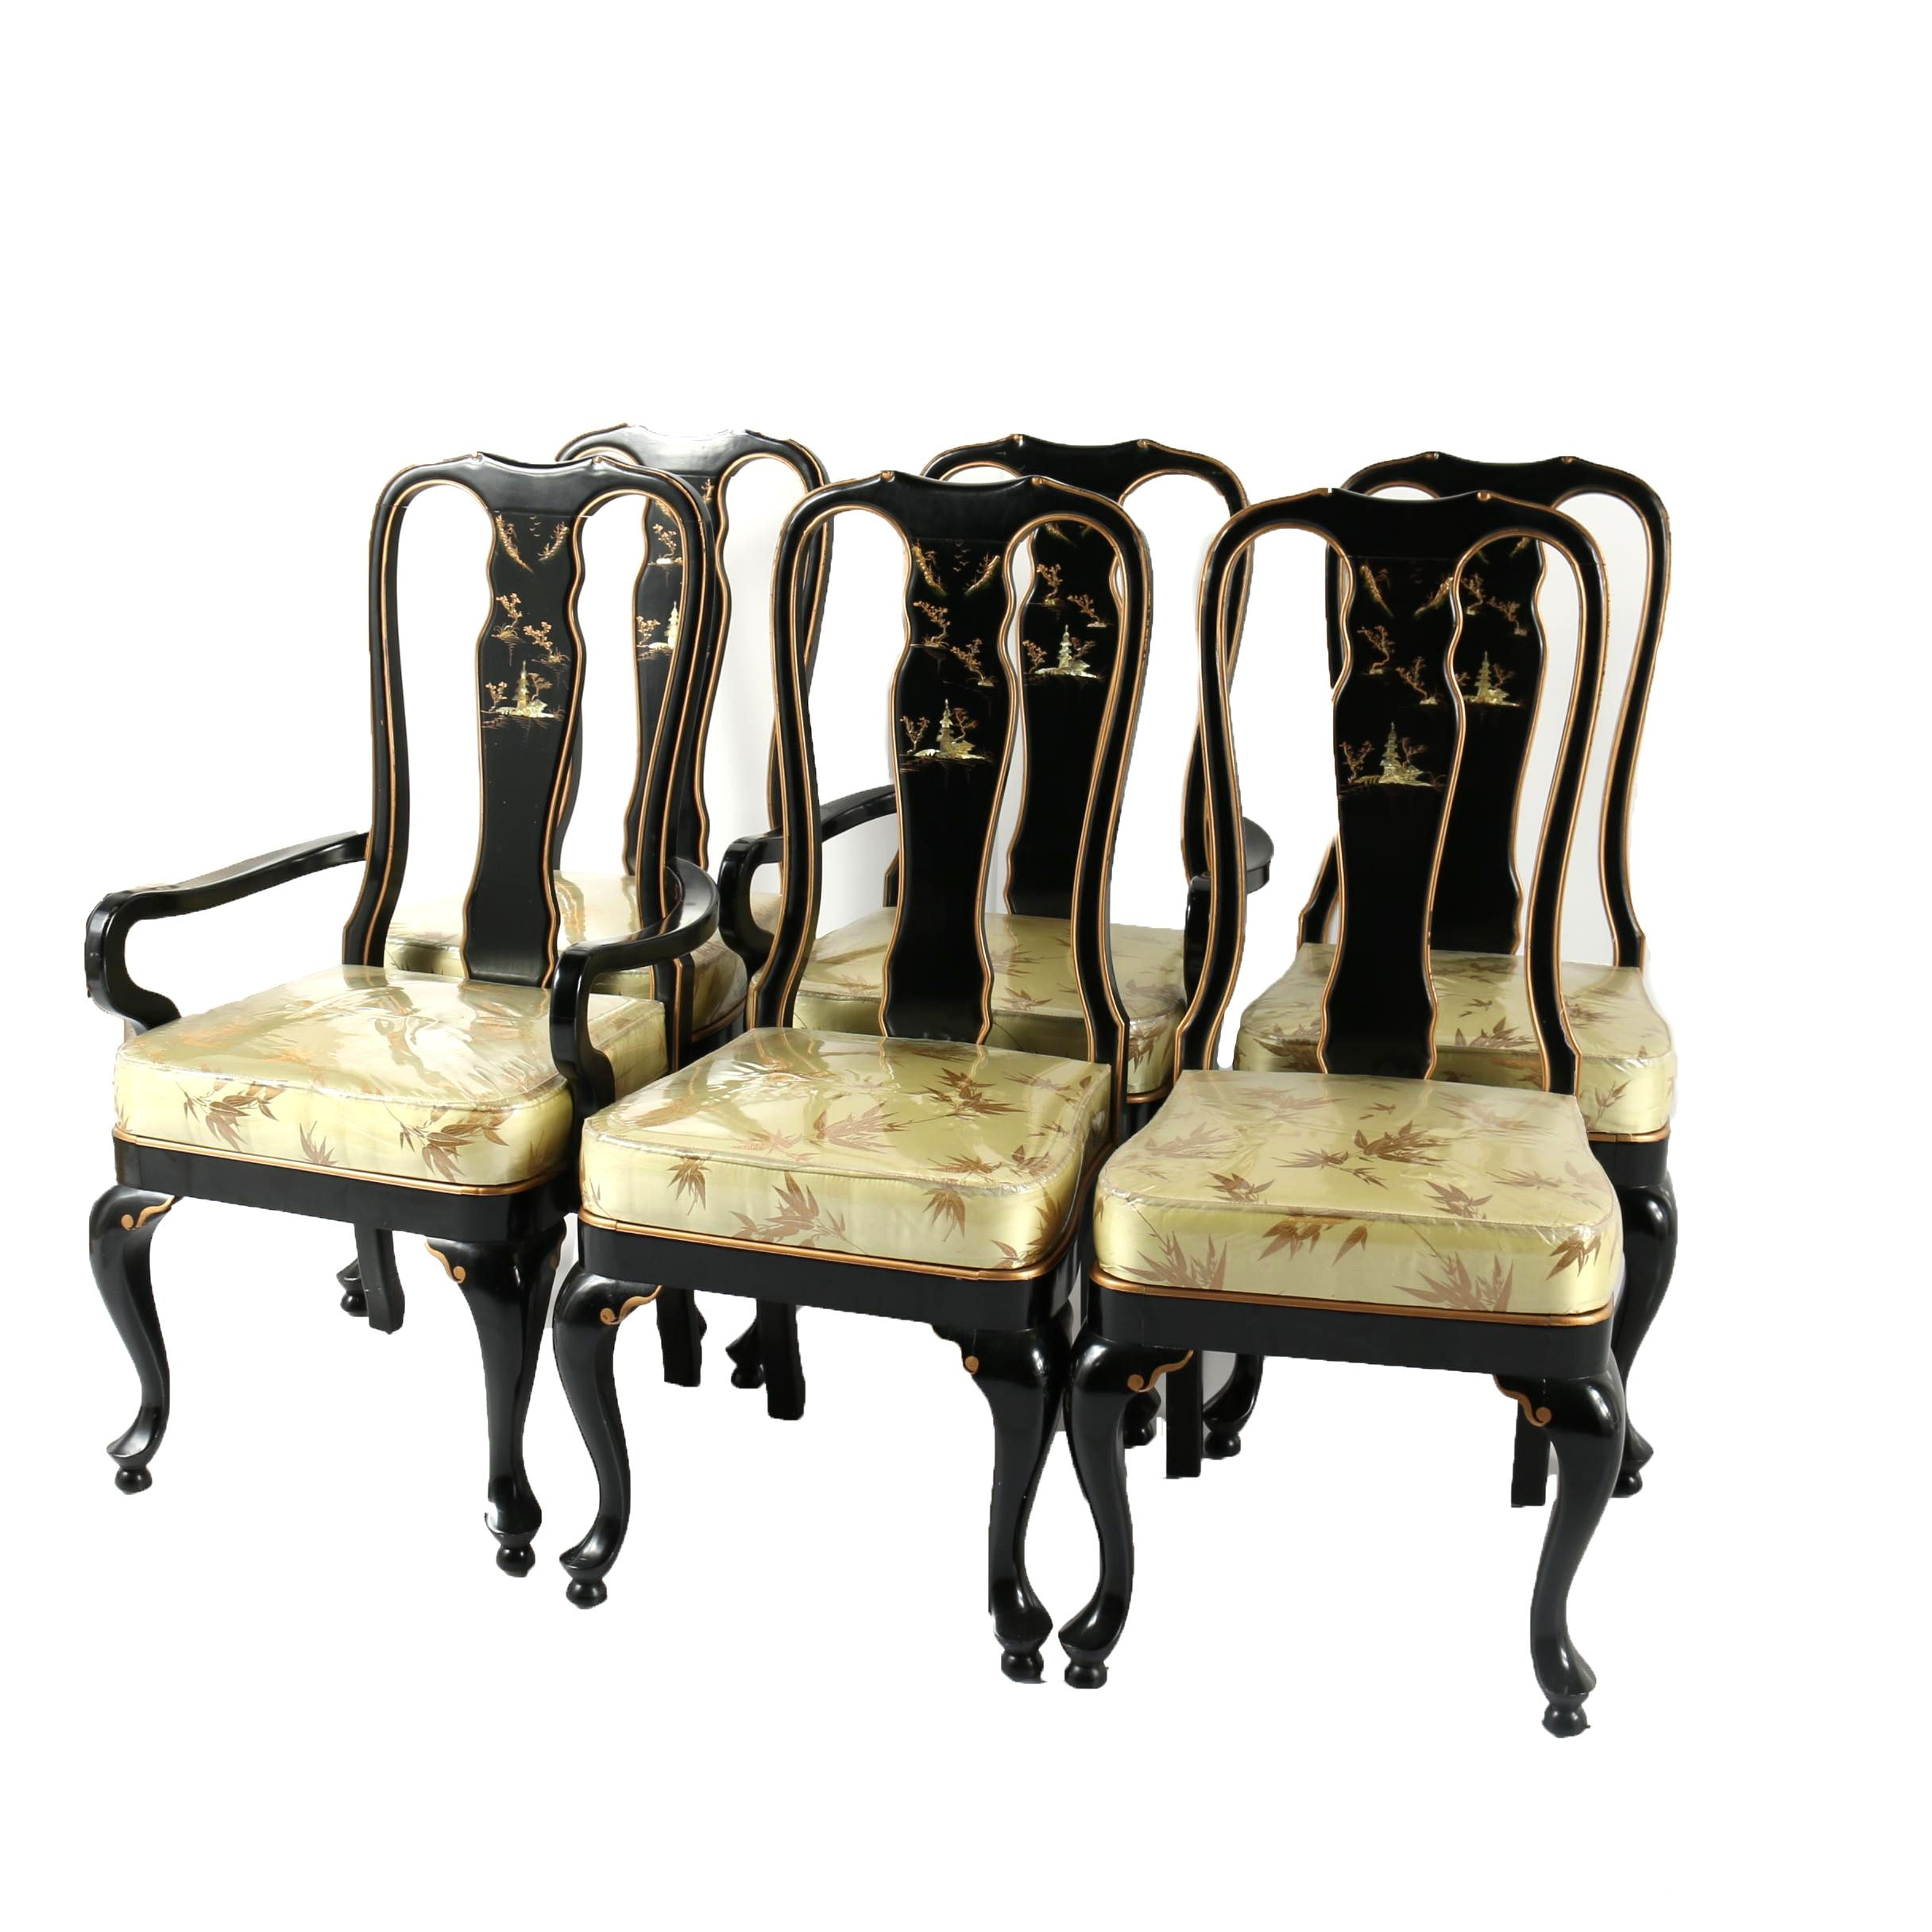 Vintage Chinese Black Lacquered Dining Chairs